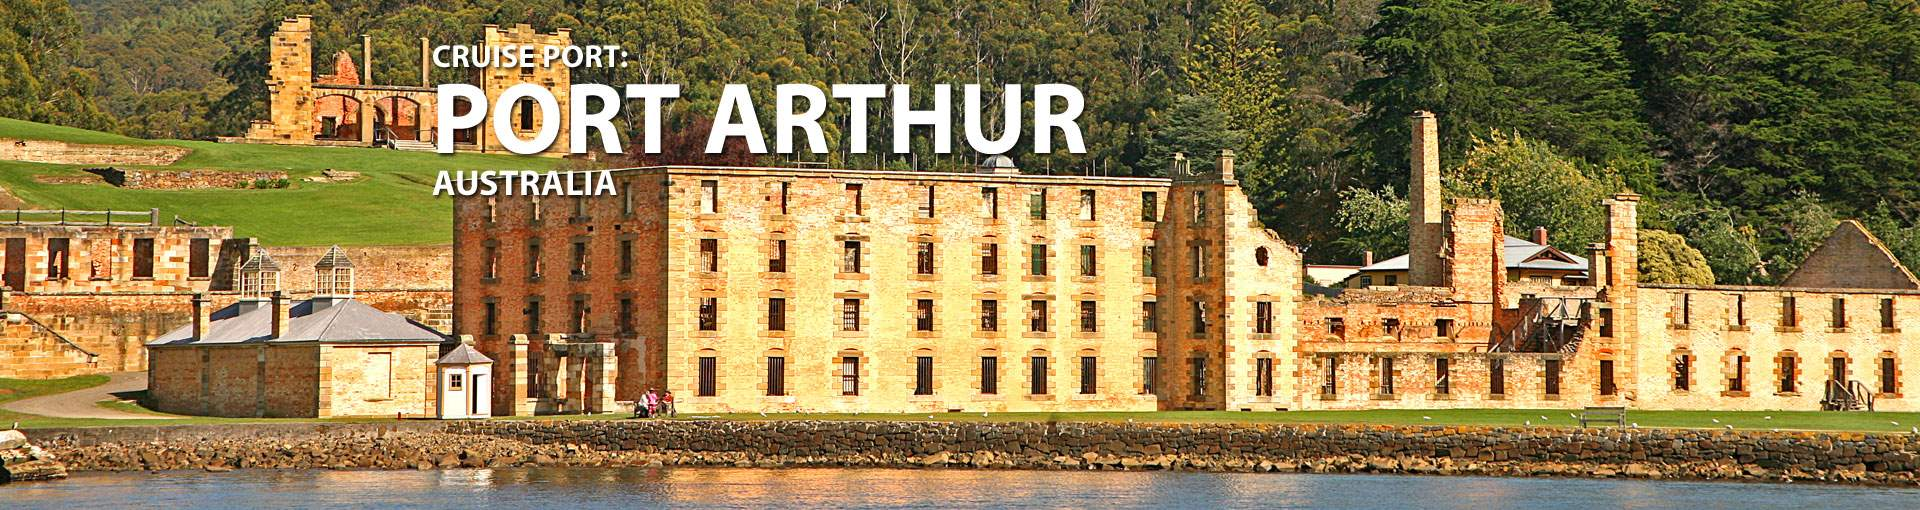 Cruises to Port Arthur, Australia